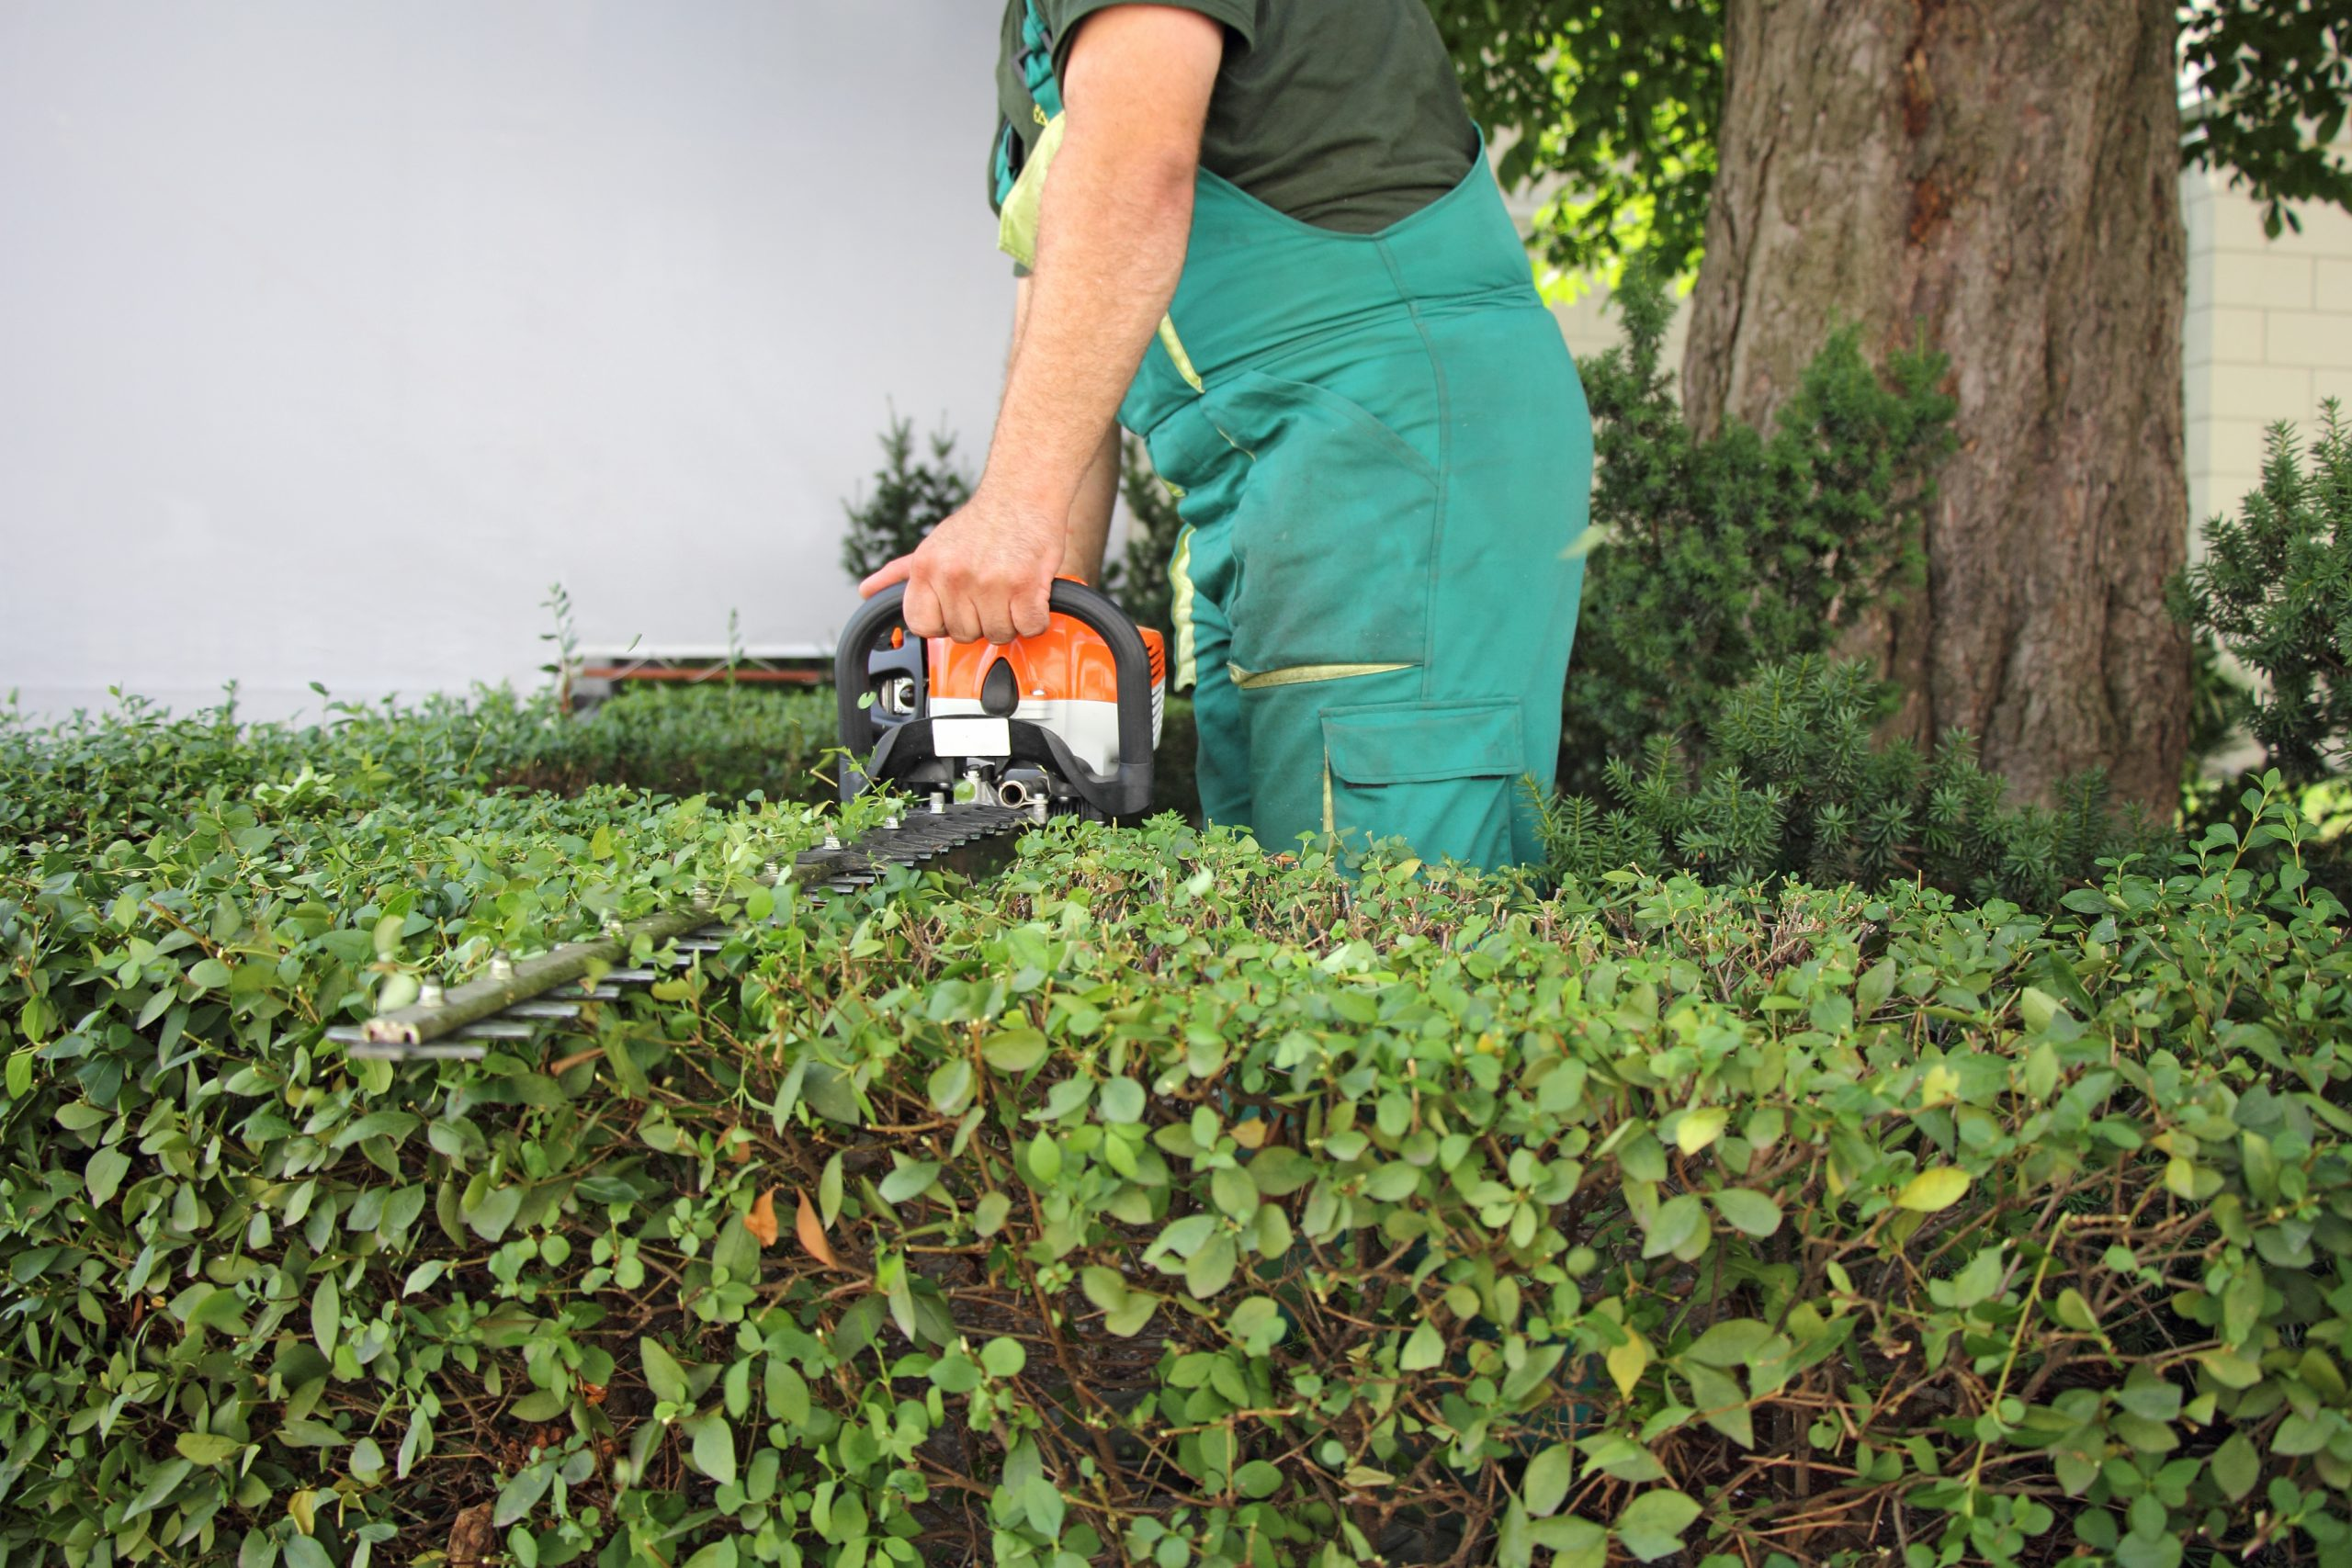 shrub and hedge trimming service quincy ma